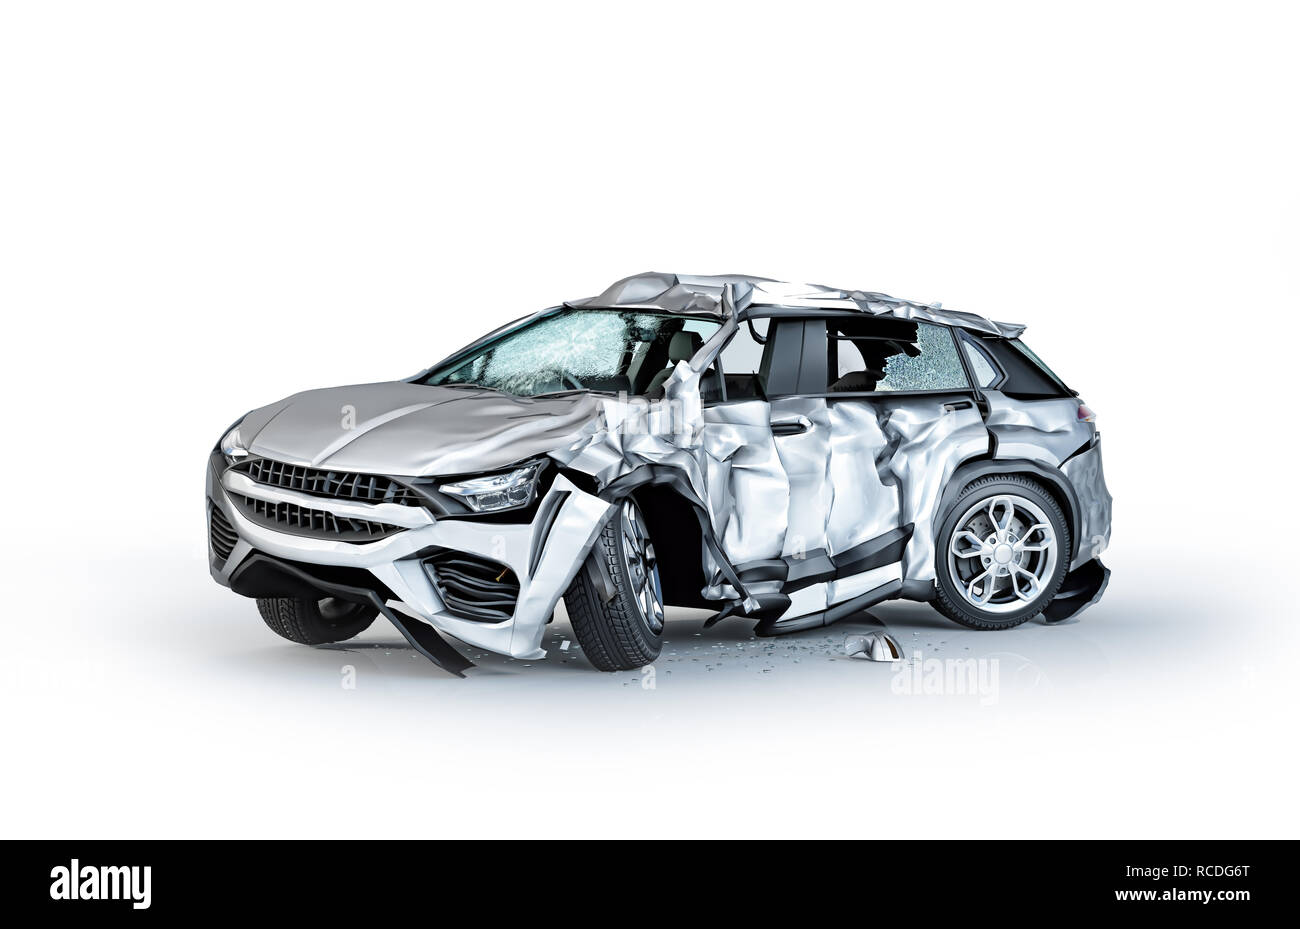 Single car crashed. Silver sedan heavily damaged on a side. Isolated on white background. Perspective view. - Stock Image